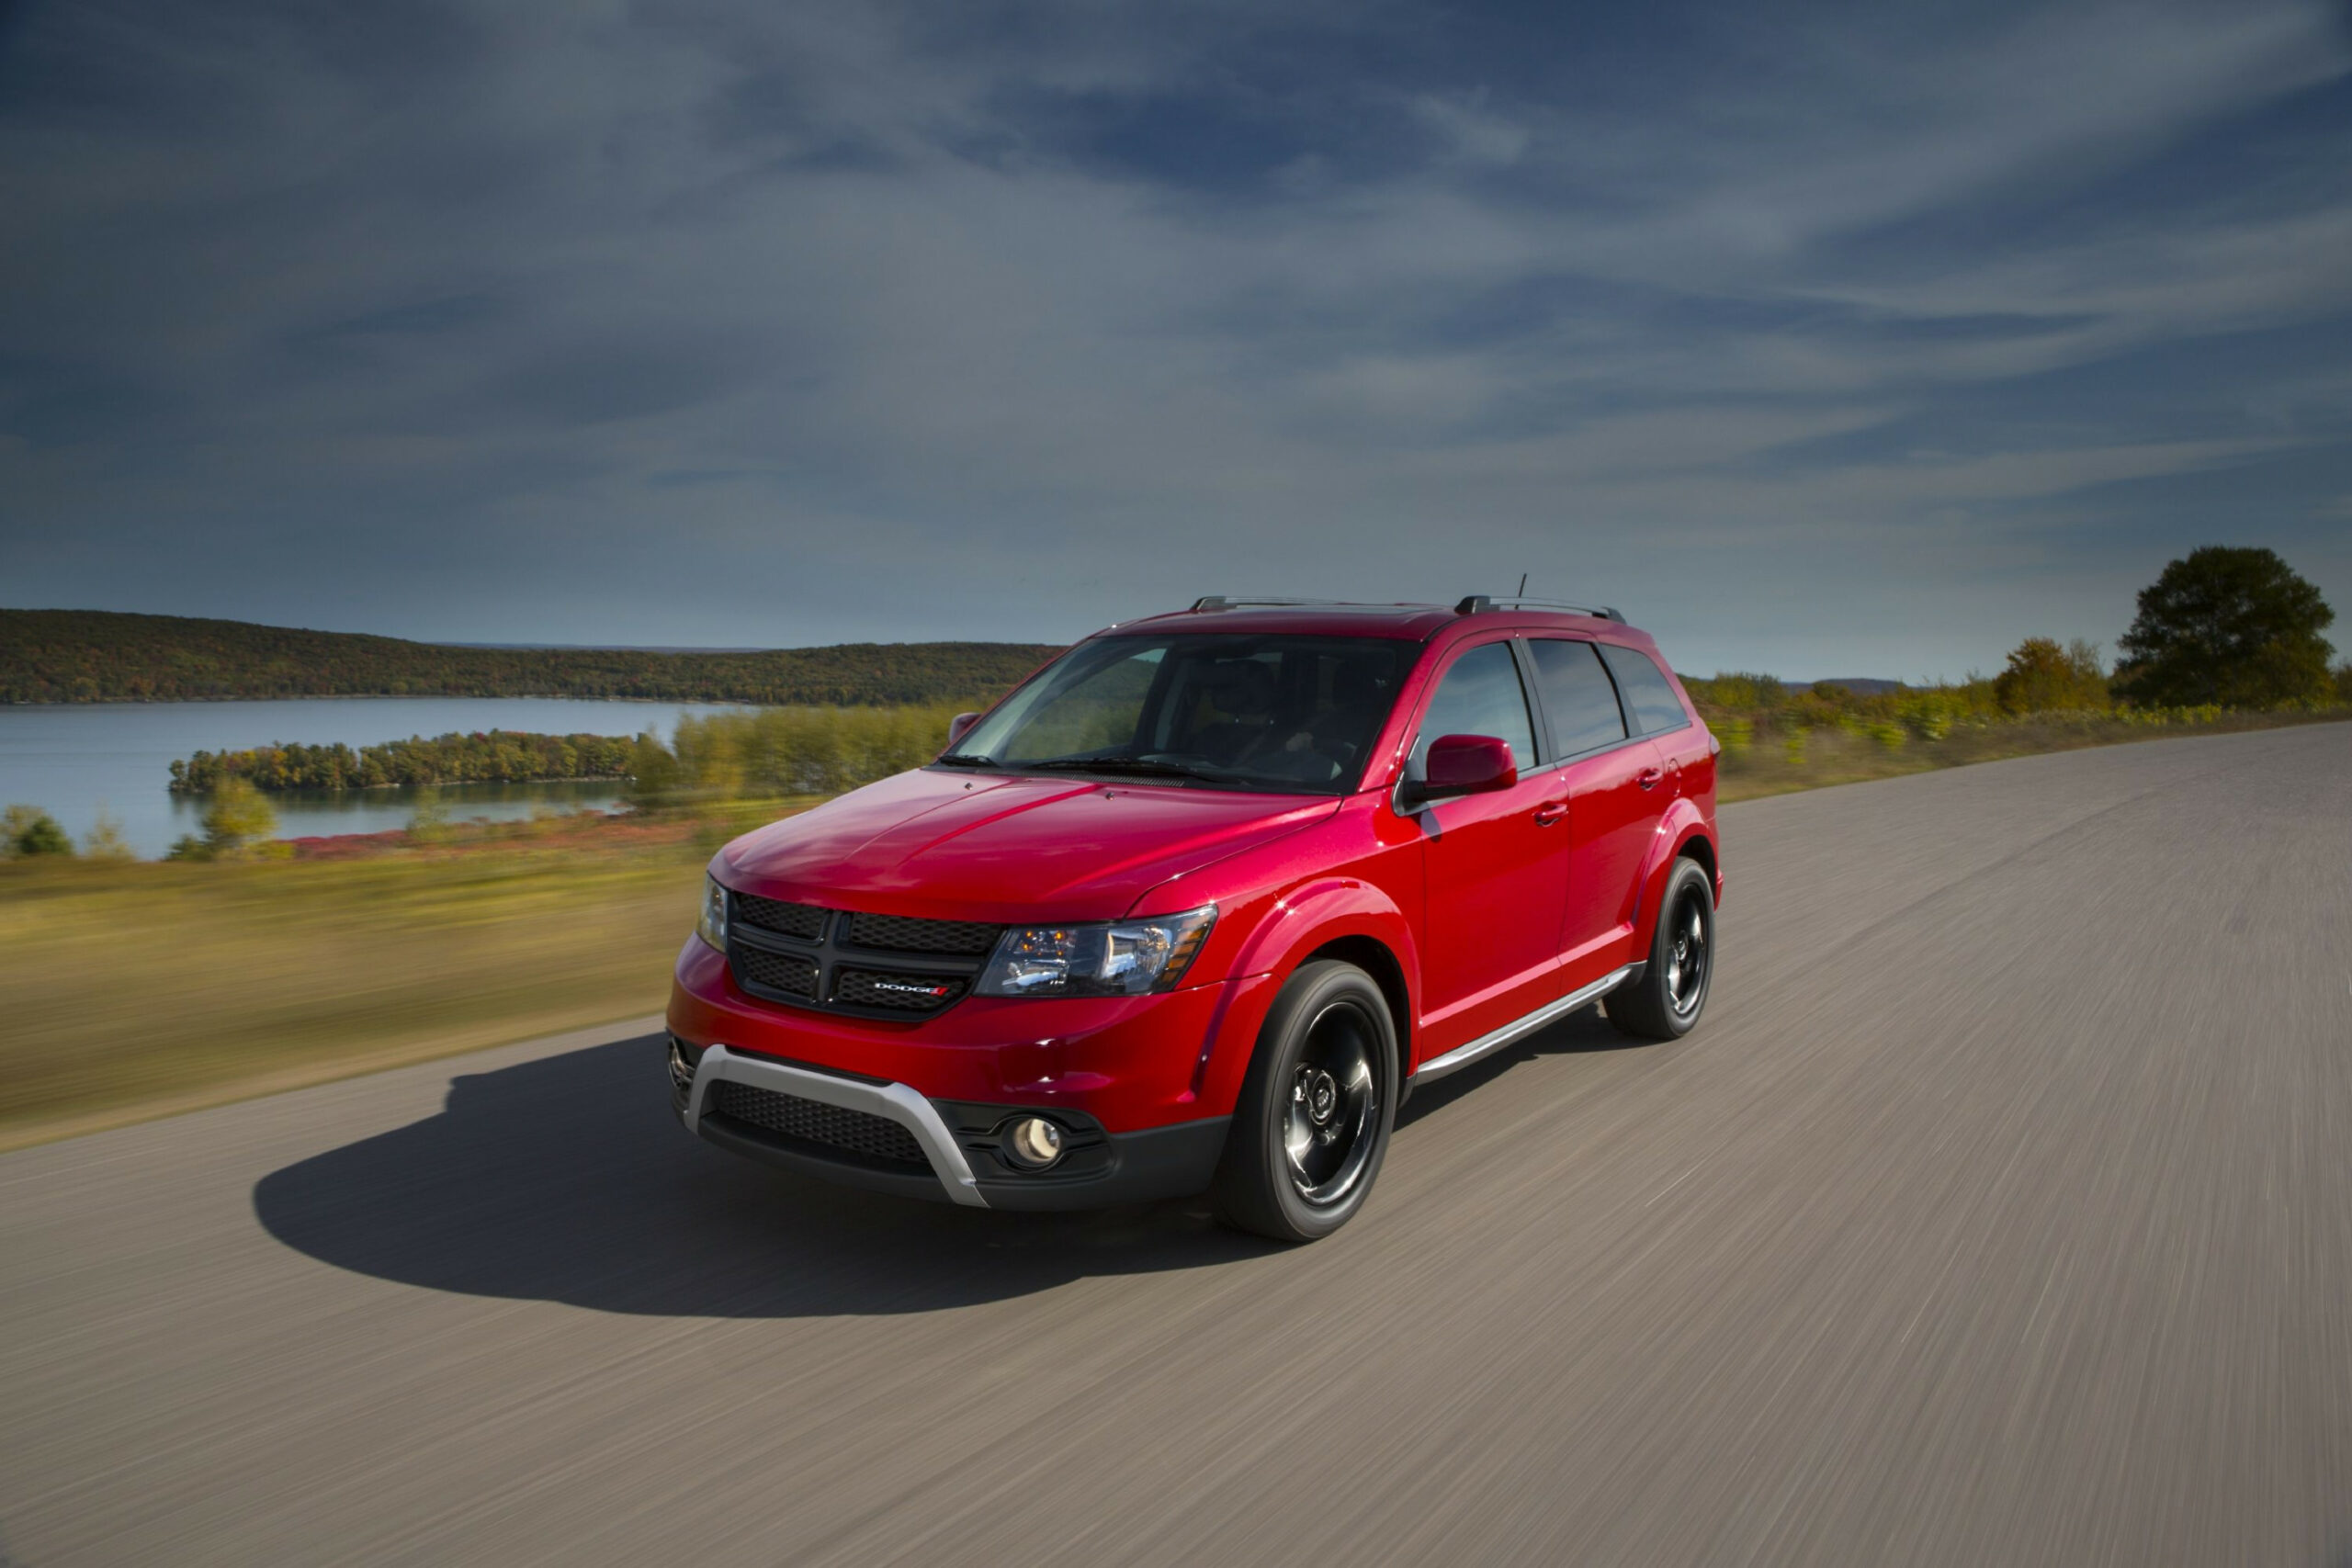 7 Dodge Journey Review, Pricing, and Specs - 2020 dodge journey mpg